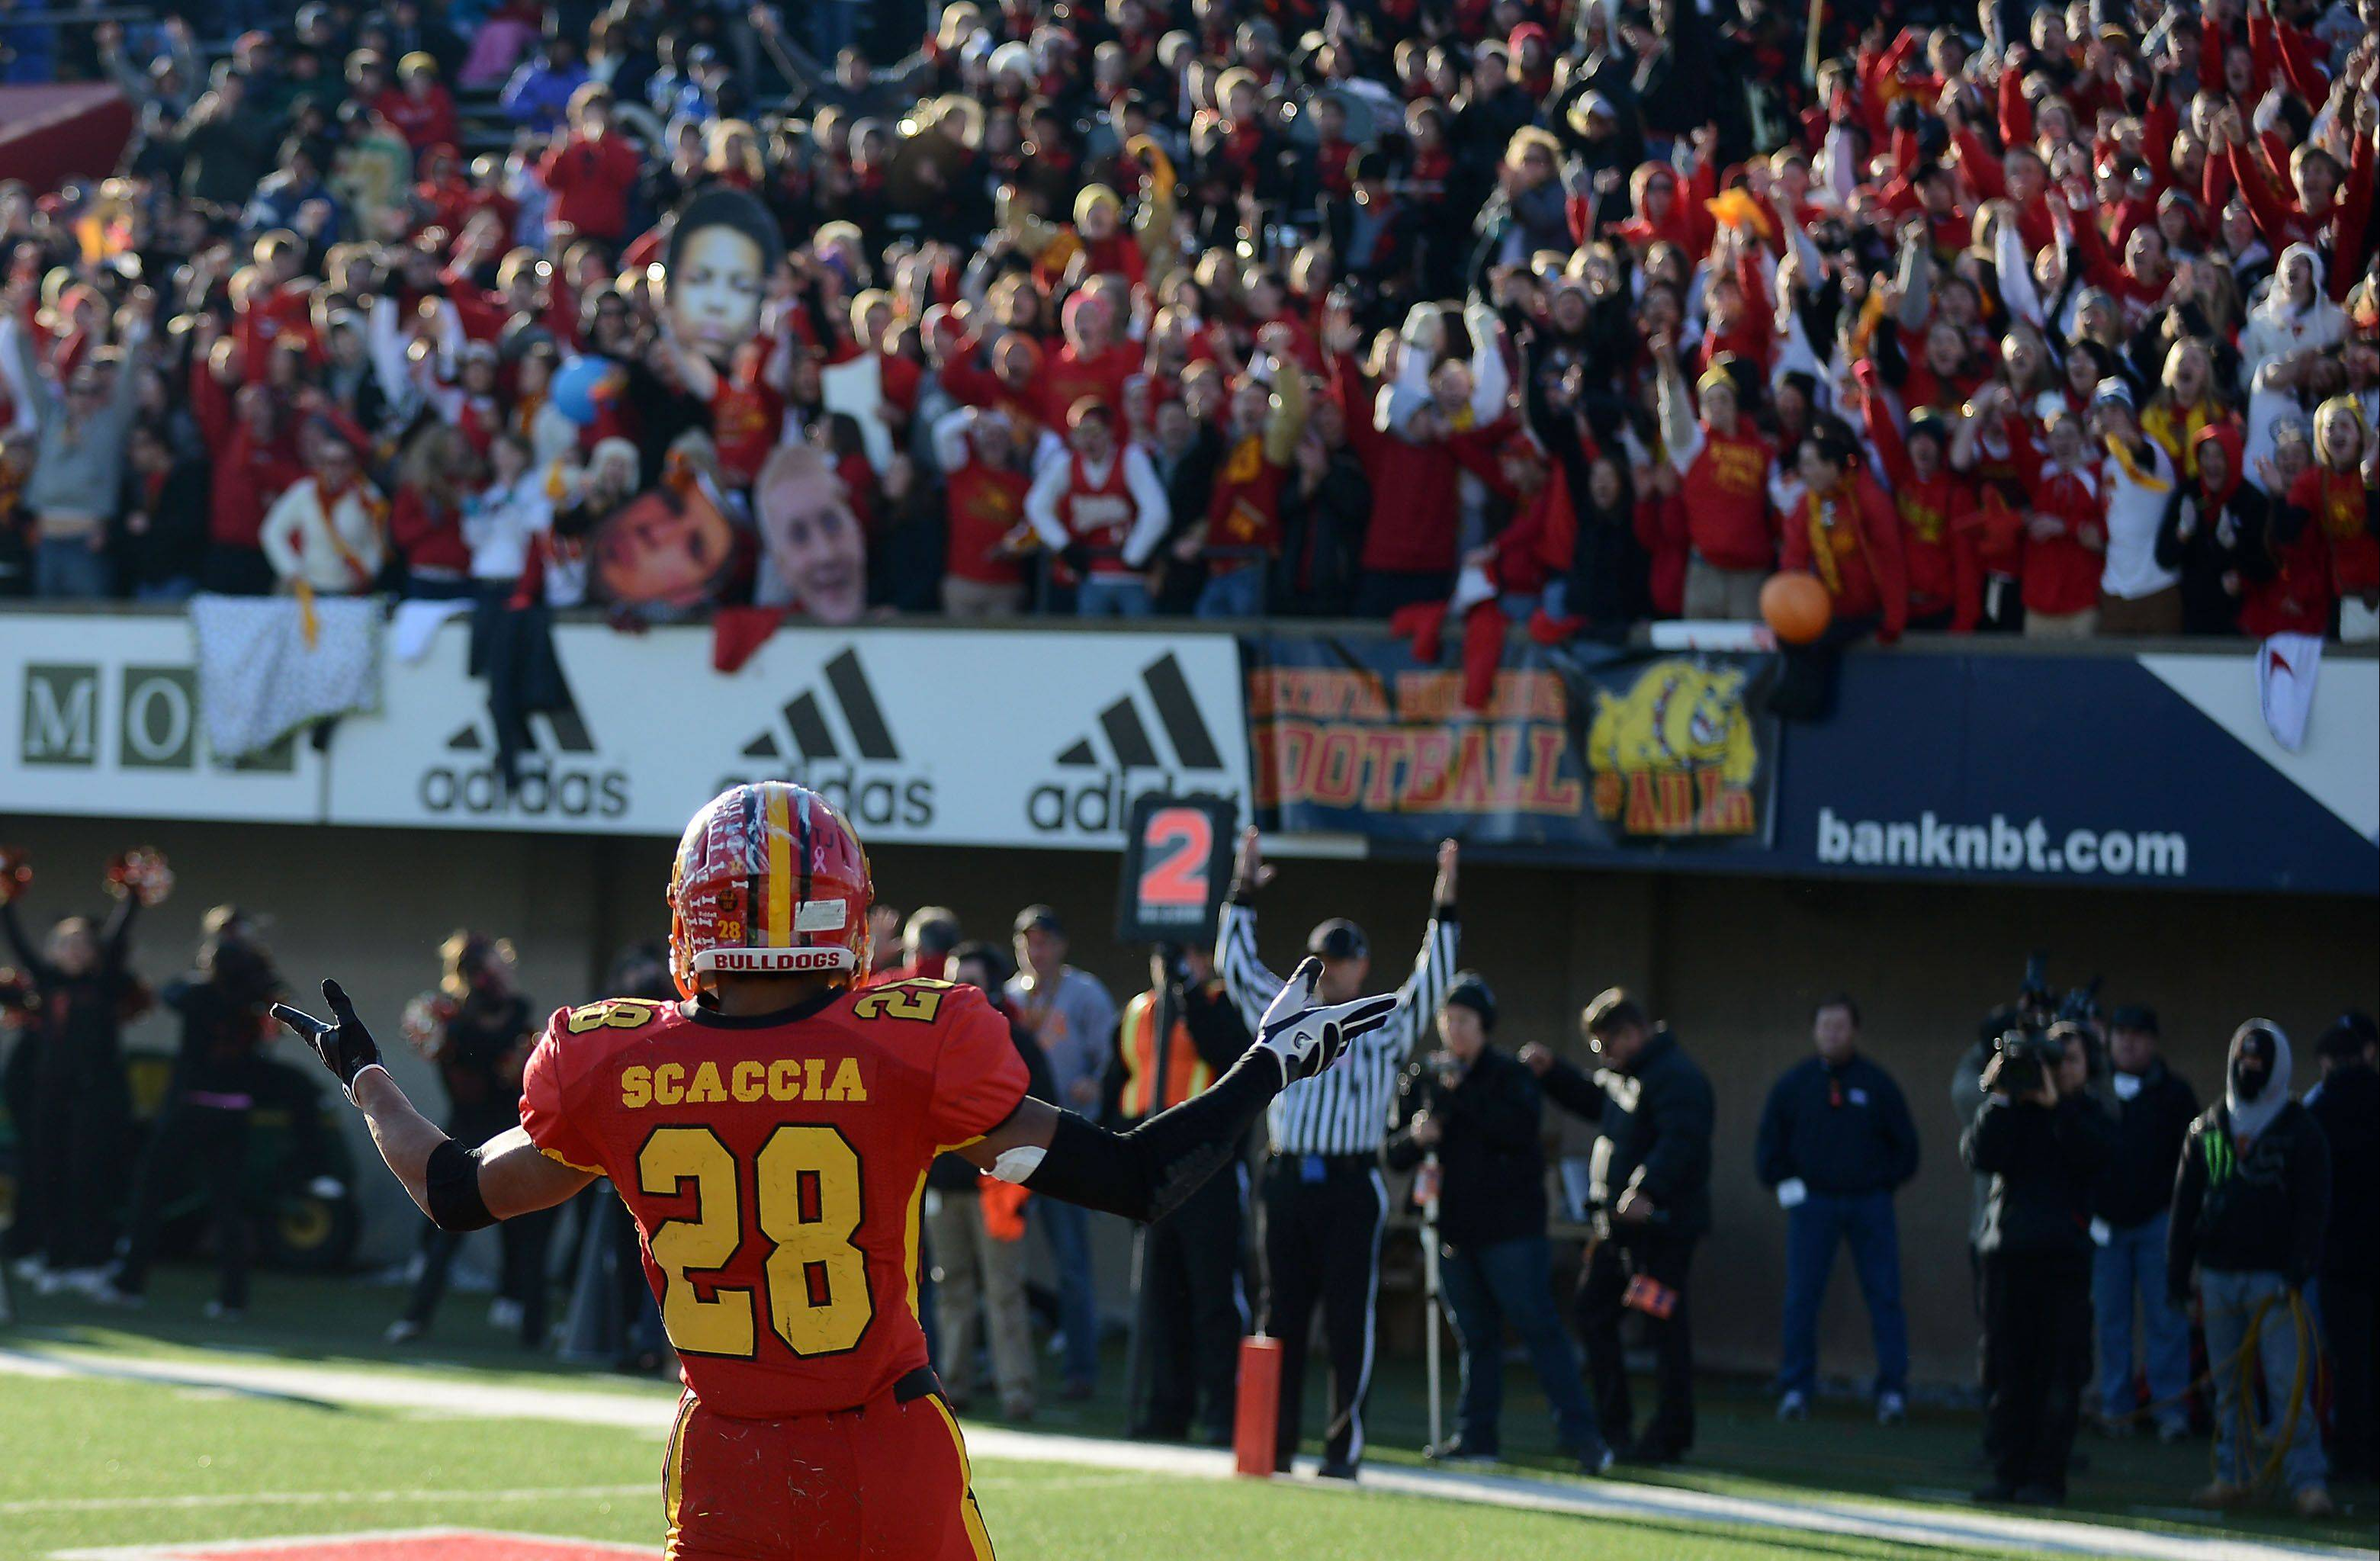 Batavia's Anthony Scaccia plays to the crowd after scoring a first-quarter touchdown against Richards during last November's Class 6A state championship game in DeKalb.